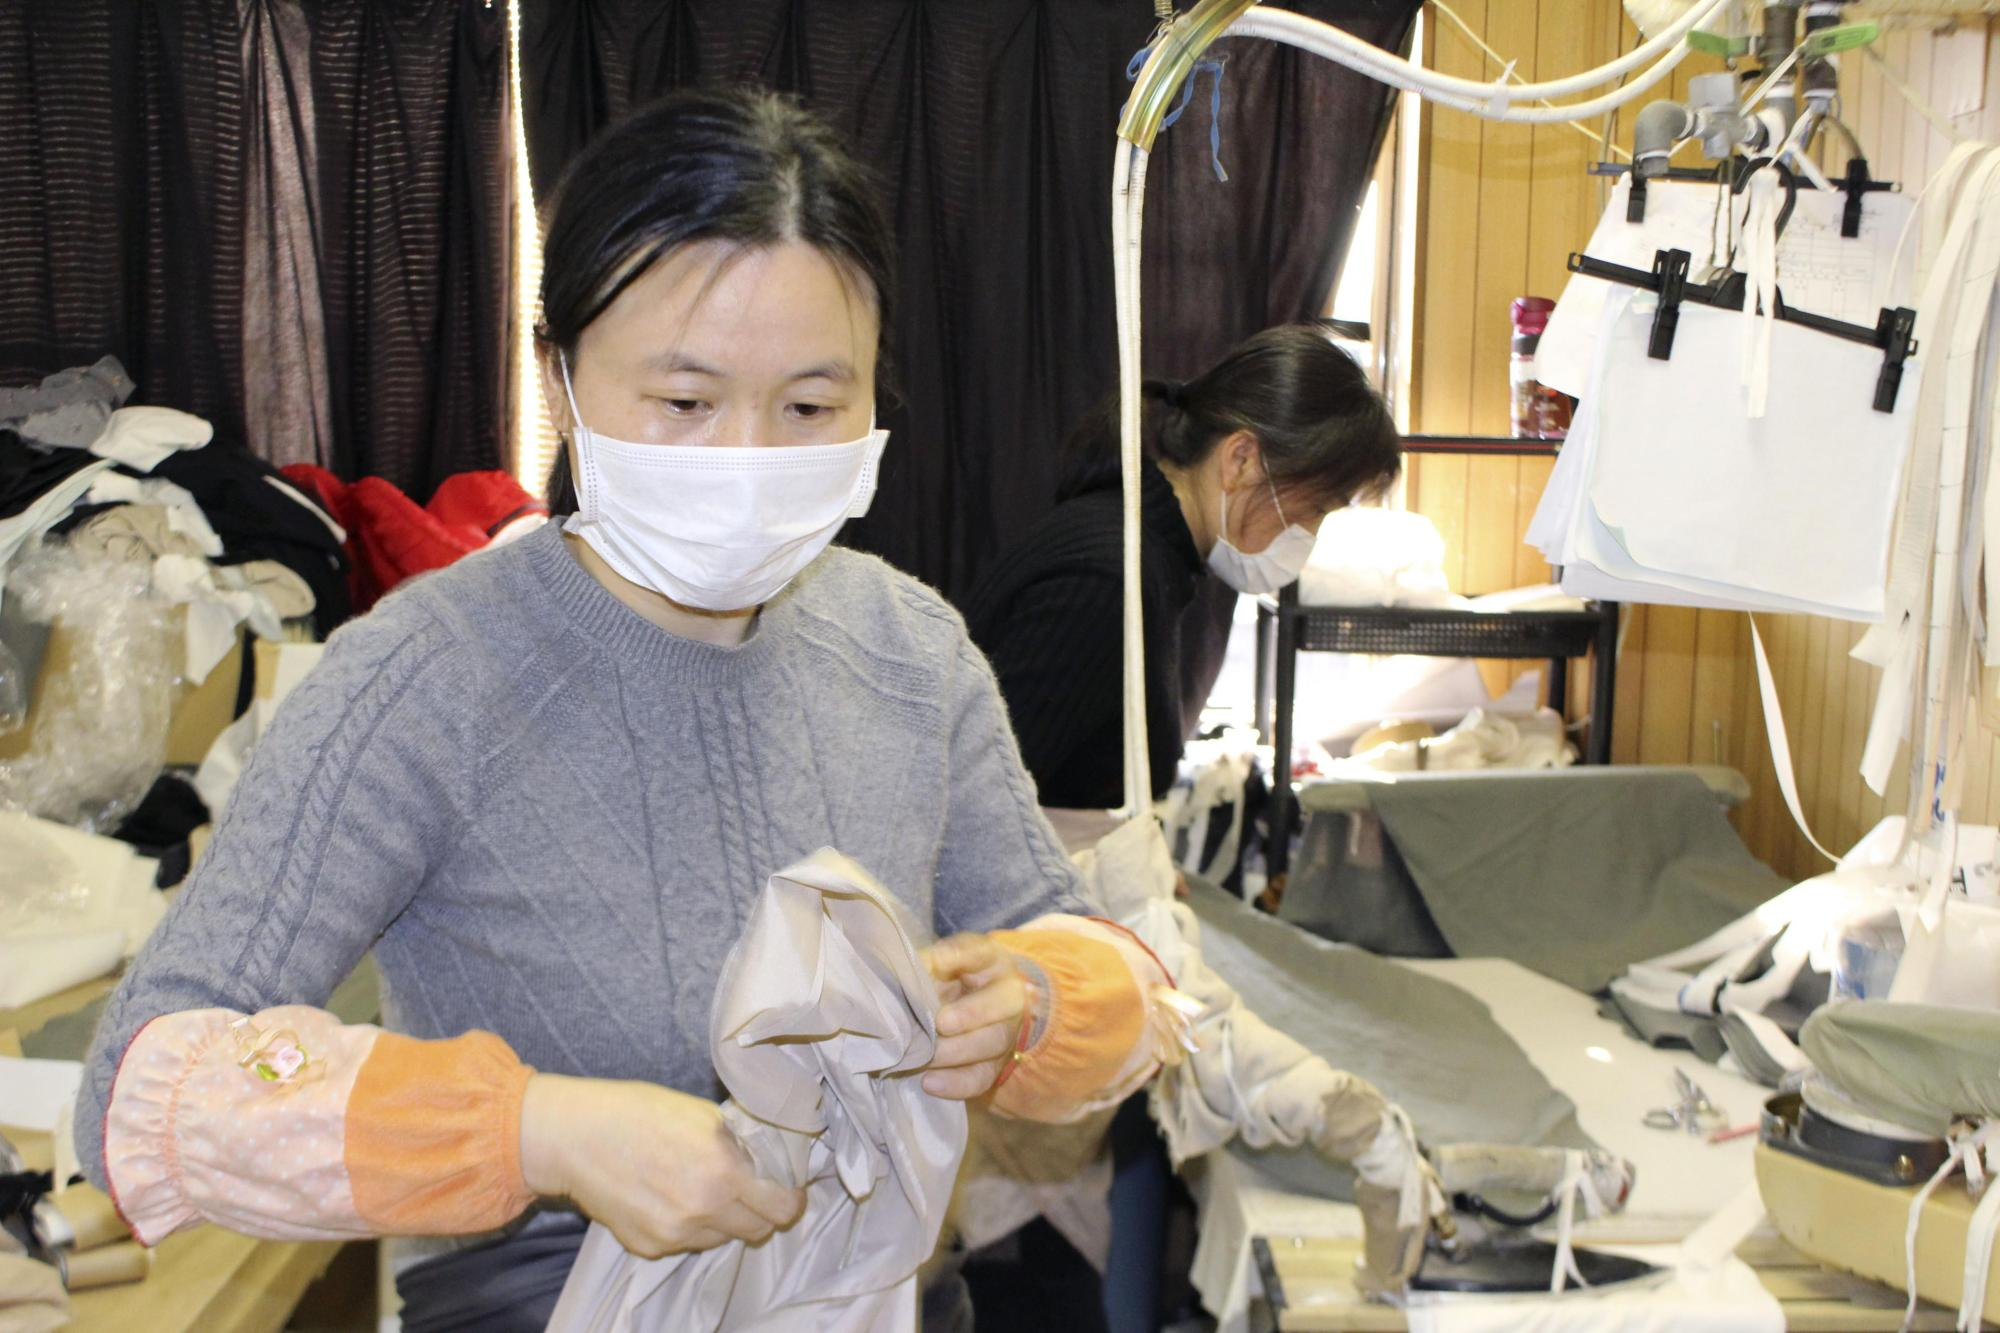 A Chinese trainee works at a sewing factory in the city of Gifu on Tuesday. Many Chinese workers haven't been able to start their training programs in Japan due to entry restrictions linked to the new coronavirus, causing a labor shortage in several sectors. | KYODO